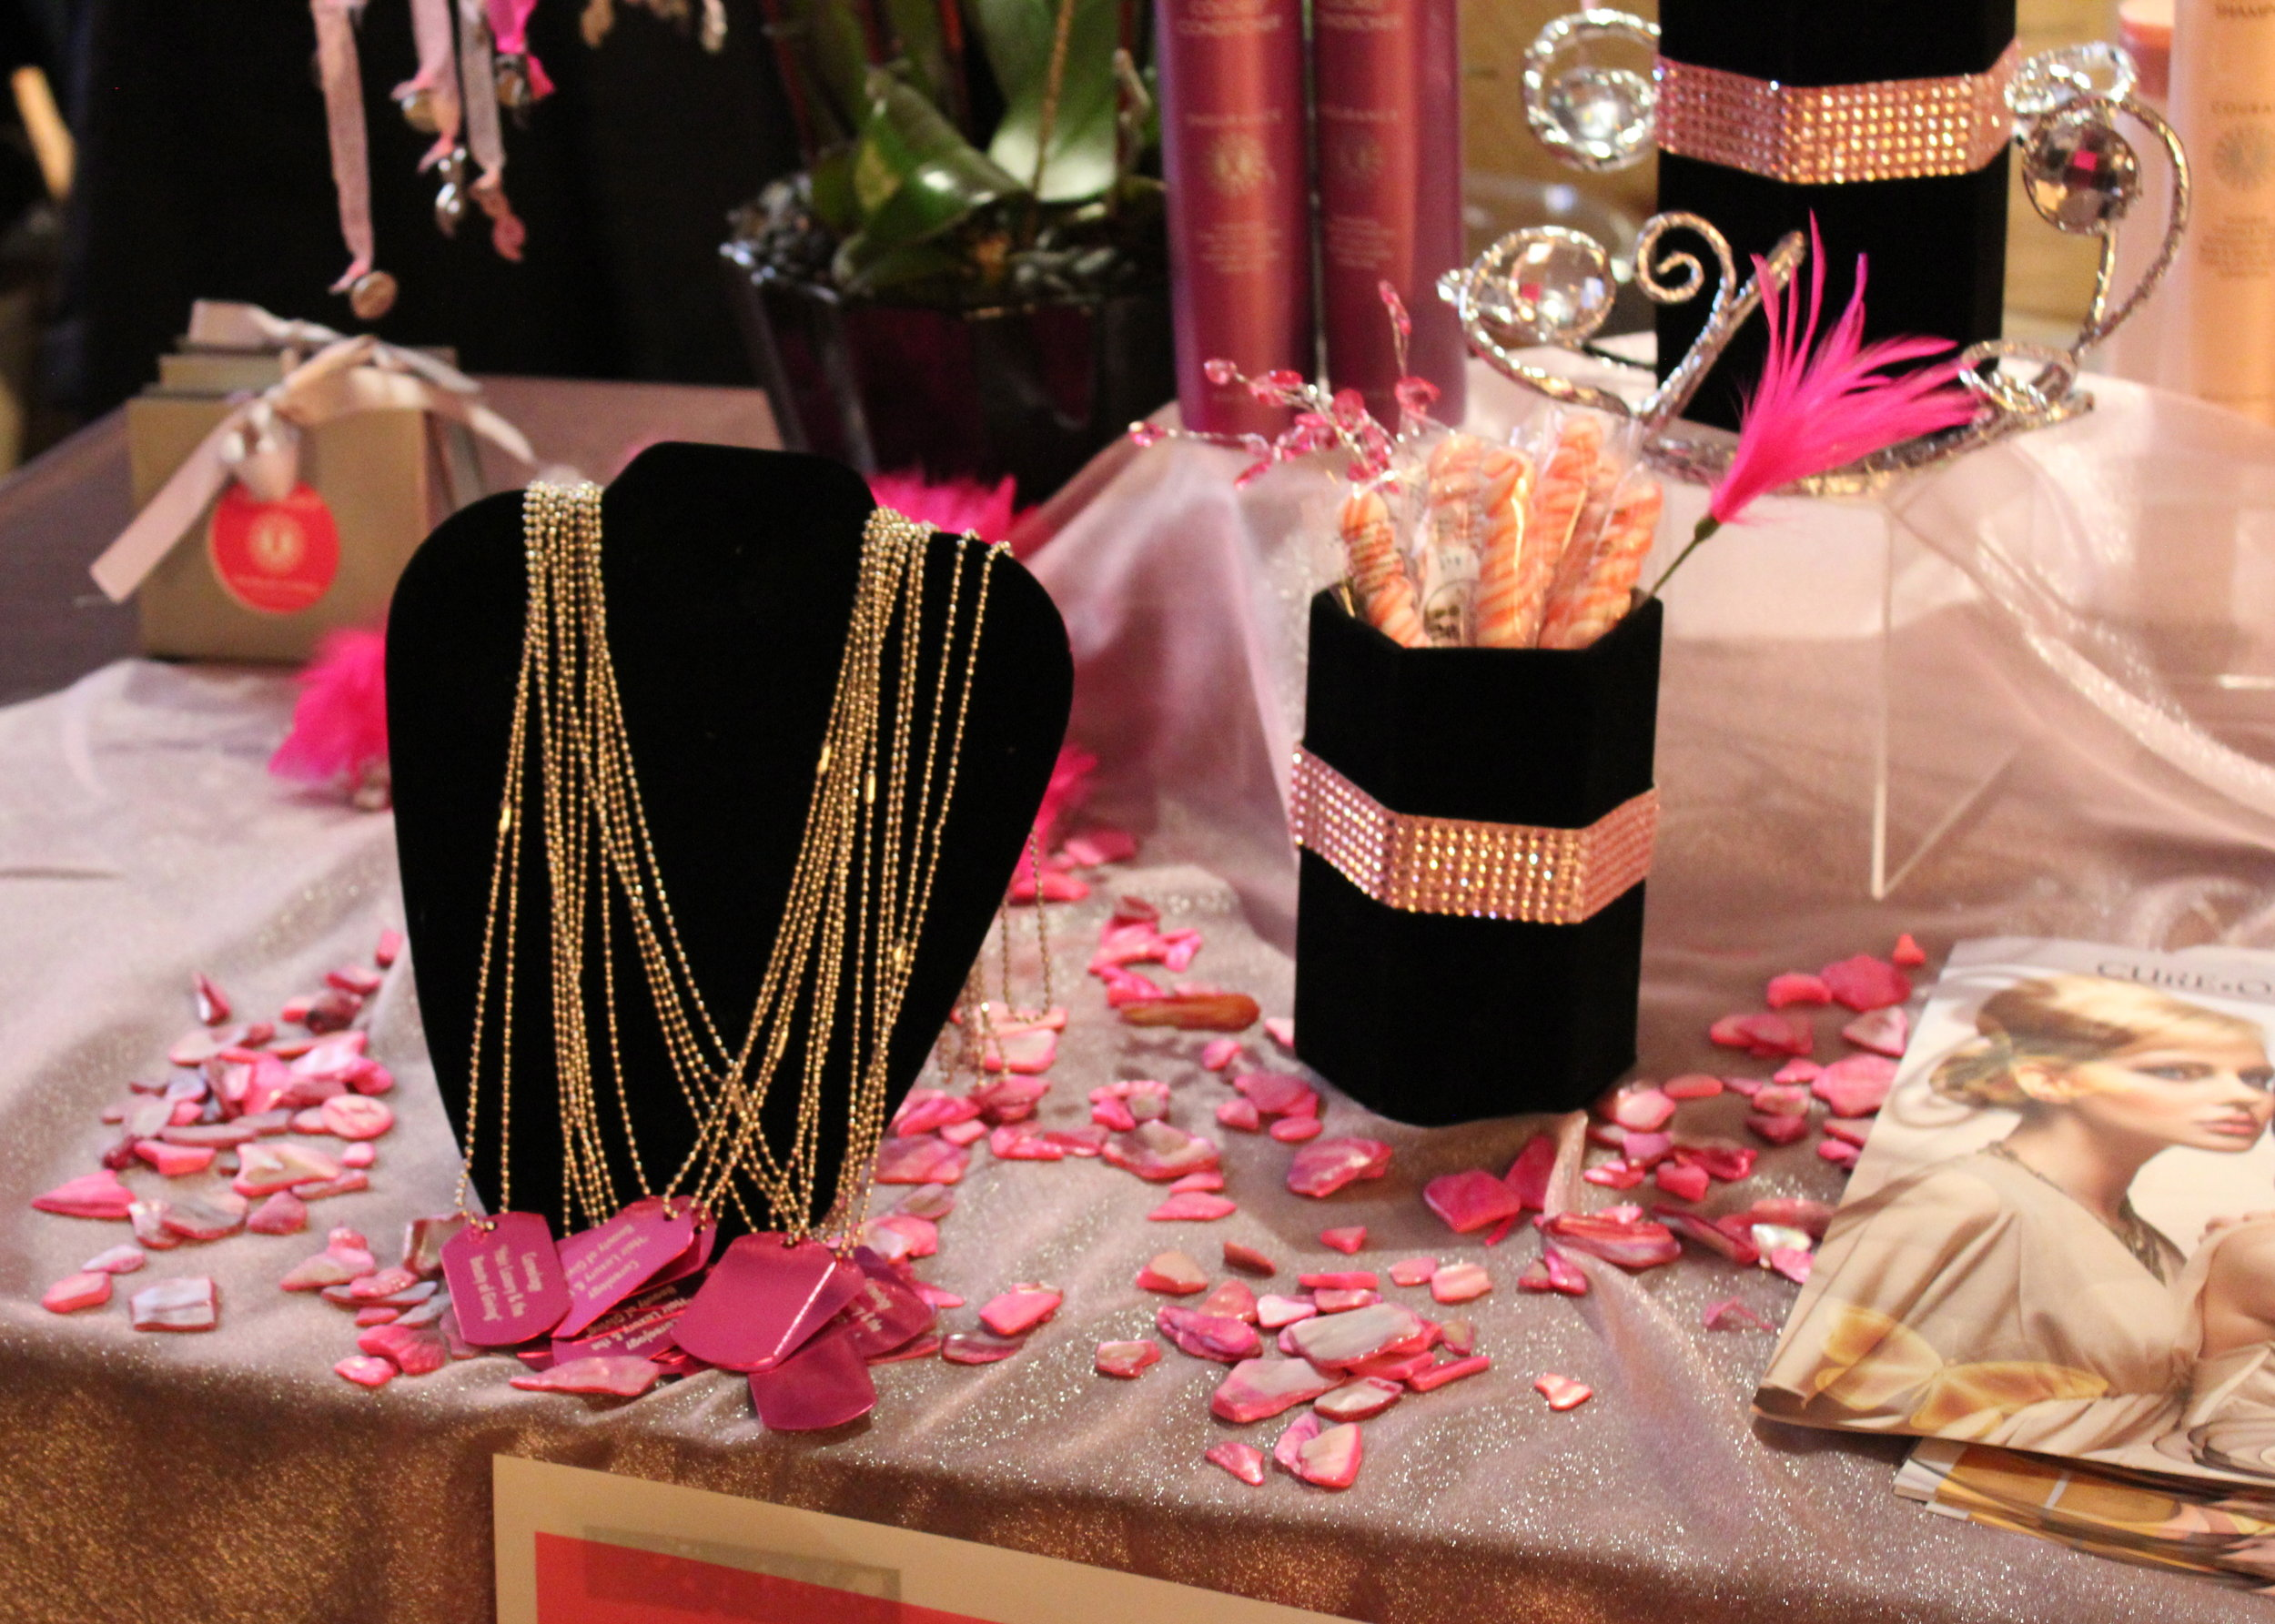 Lots of bling and jewelry were featured at the suite.